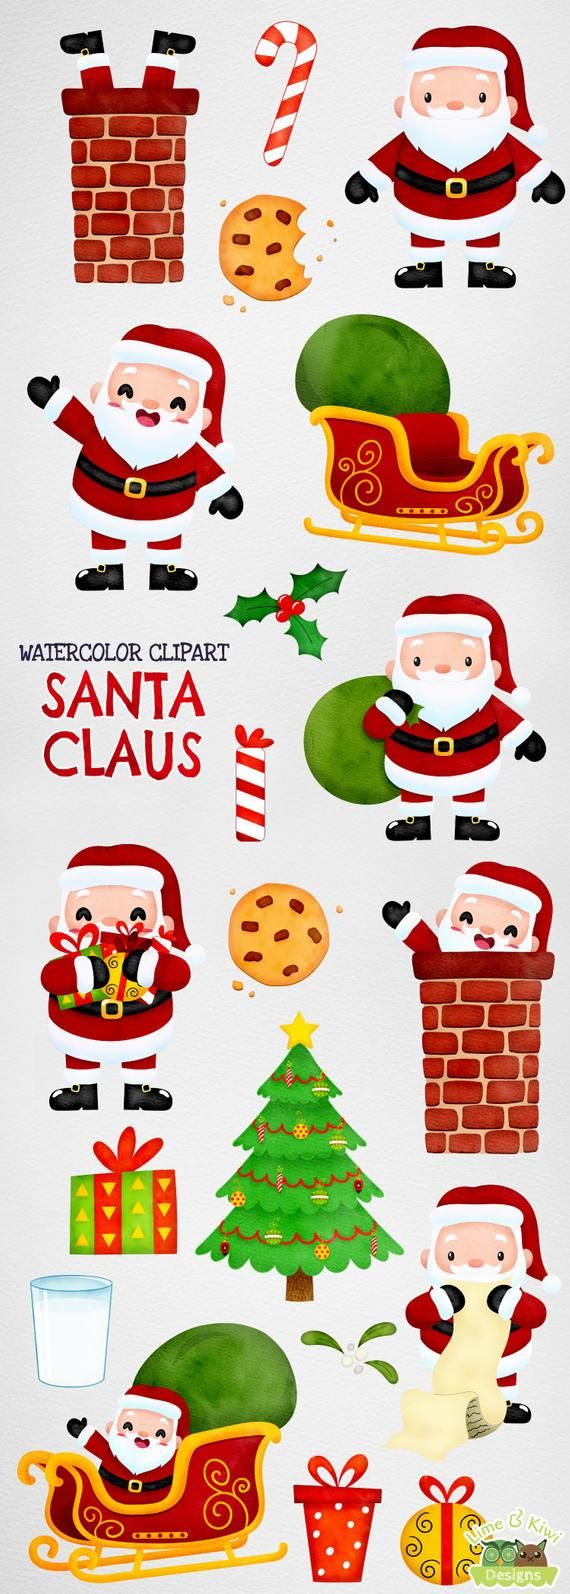 small resolution of santa claus watercolor clipart instant download vector art etsy